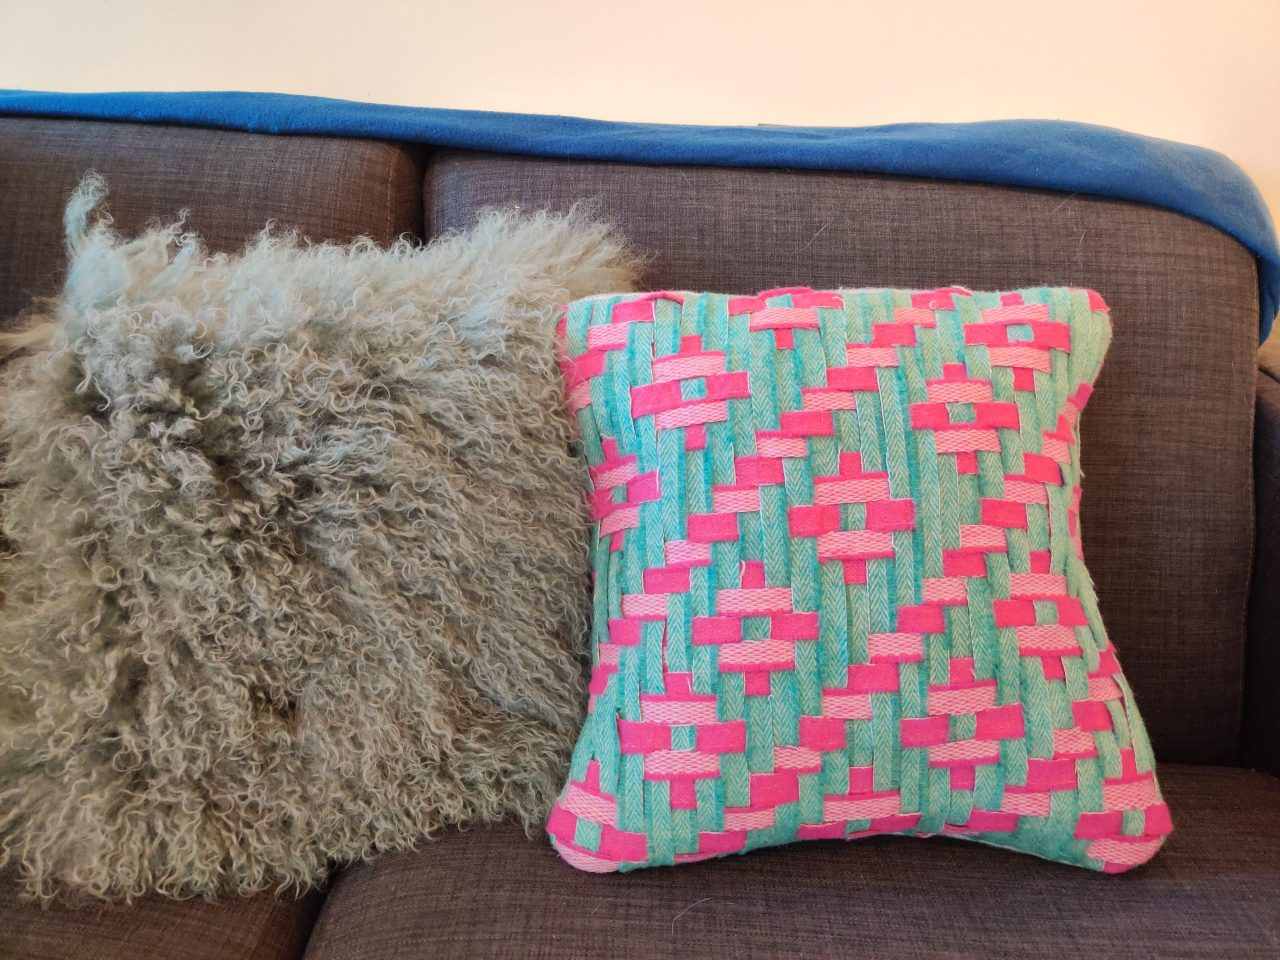 Pink and green complex meshwork cushion